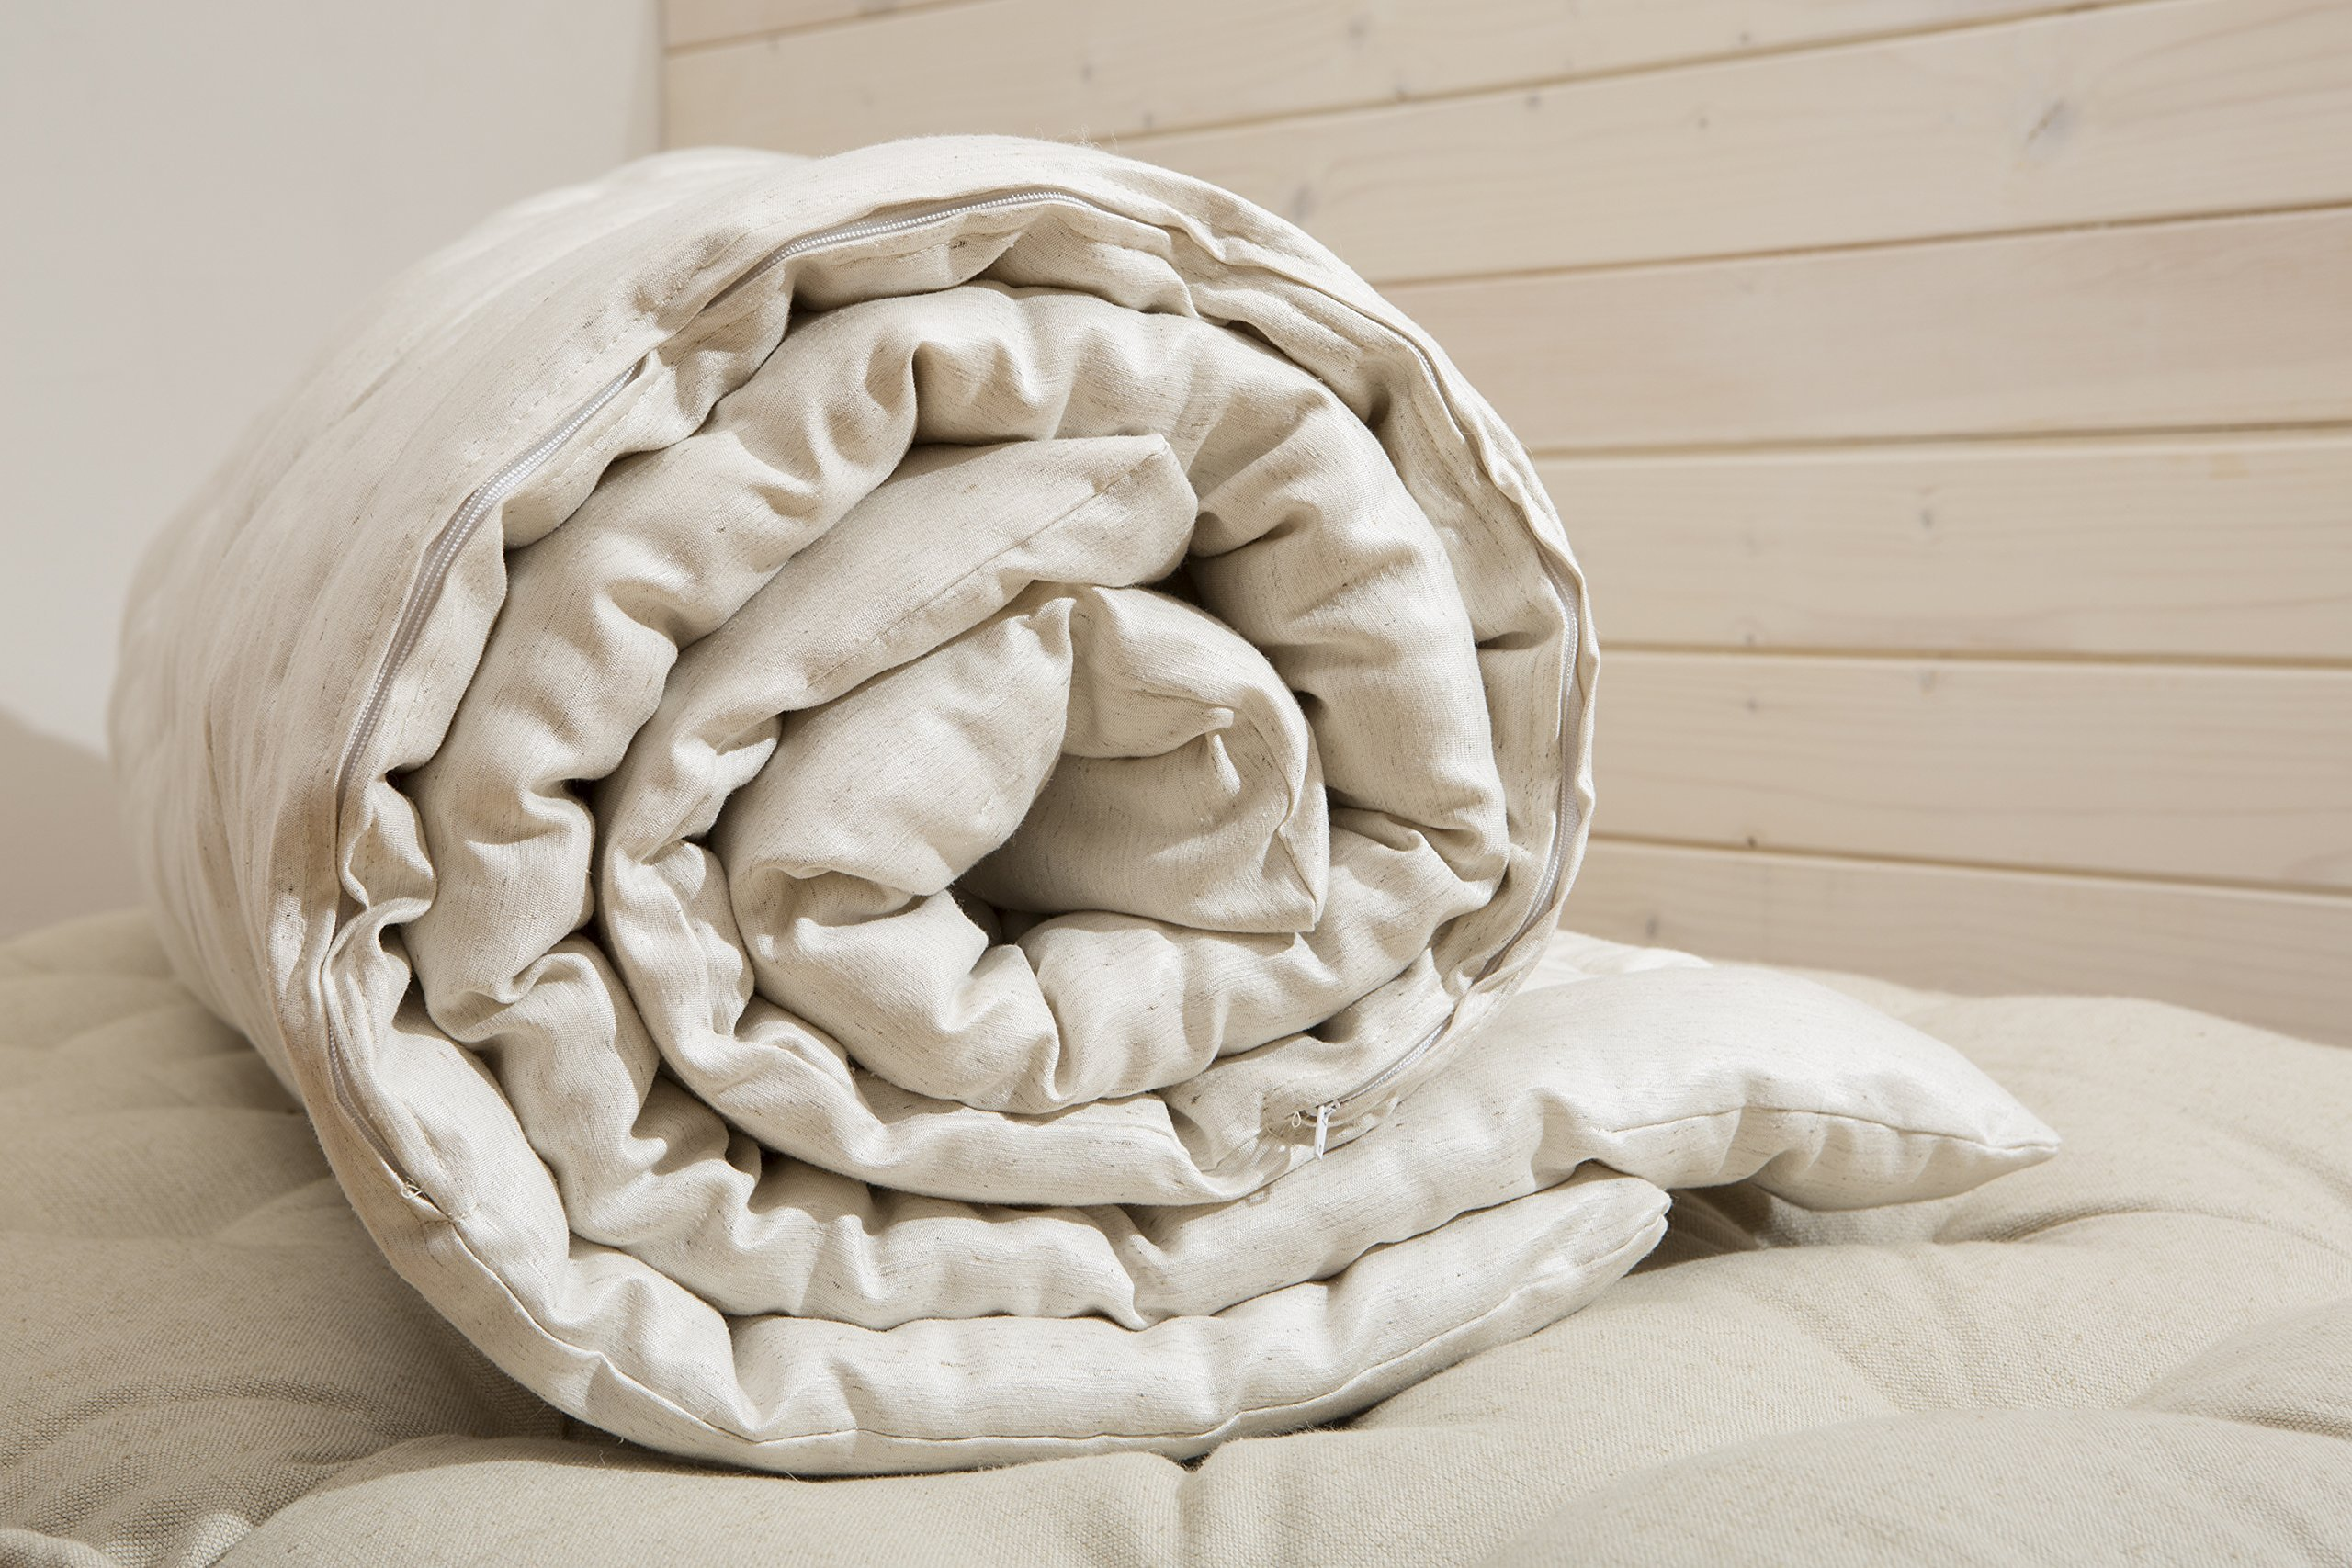 Home of Wool / Handmade Wool-filled Duvet Insert / Quilt / Comforter / Doona / Summer or Winter thickness / Natural / Non-toxic / Full, Twin, Queen, King or Any Custom Size by Home Of Wool (Image #3)